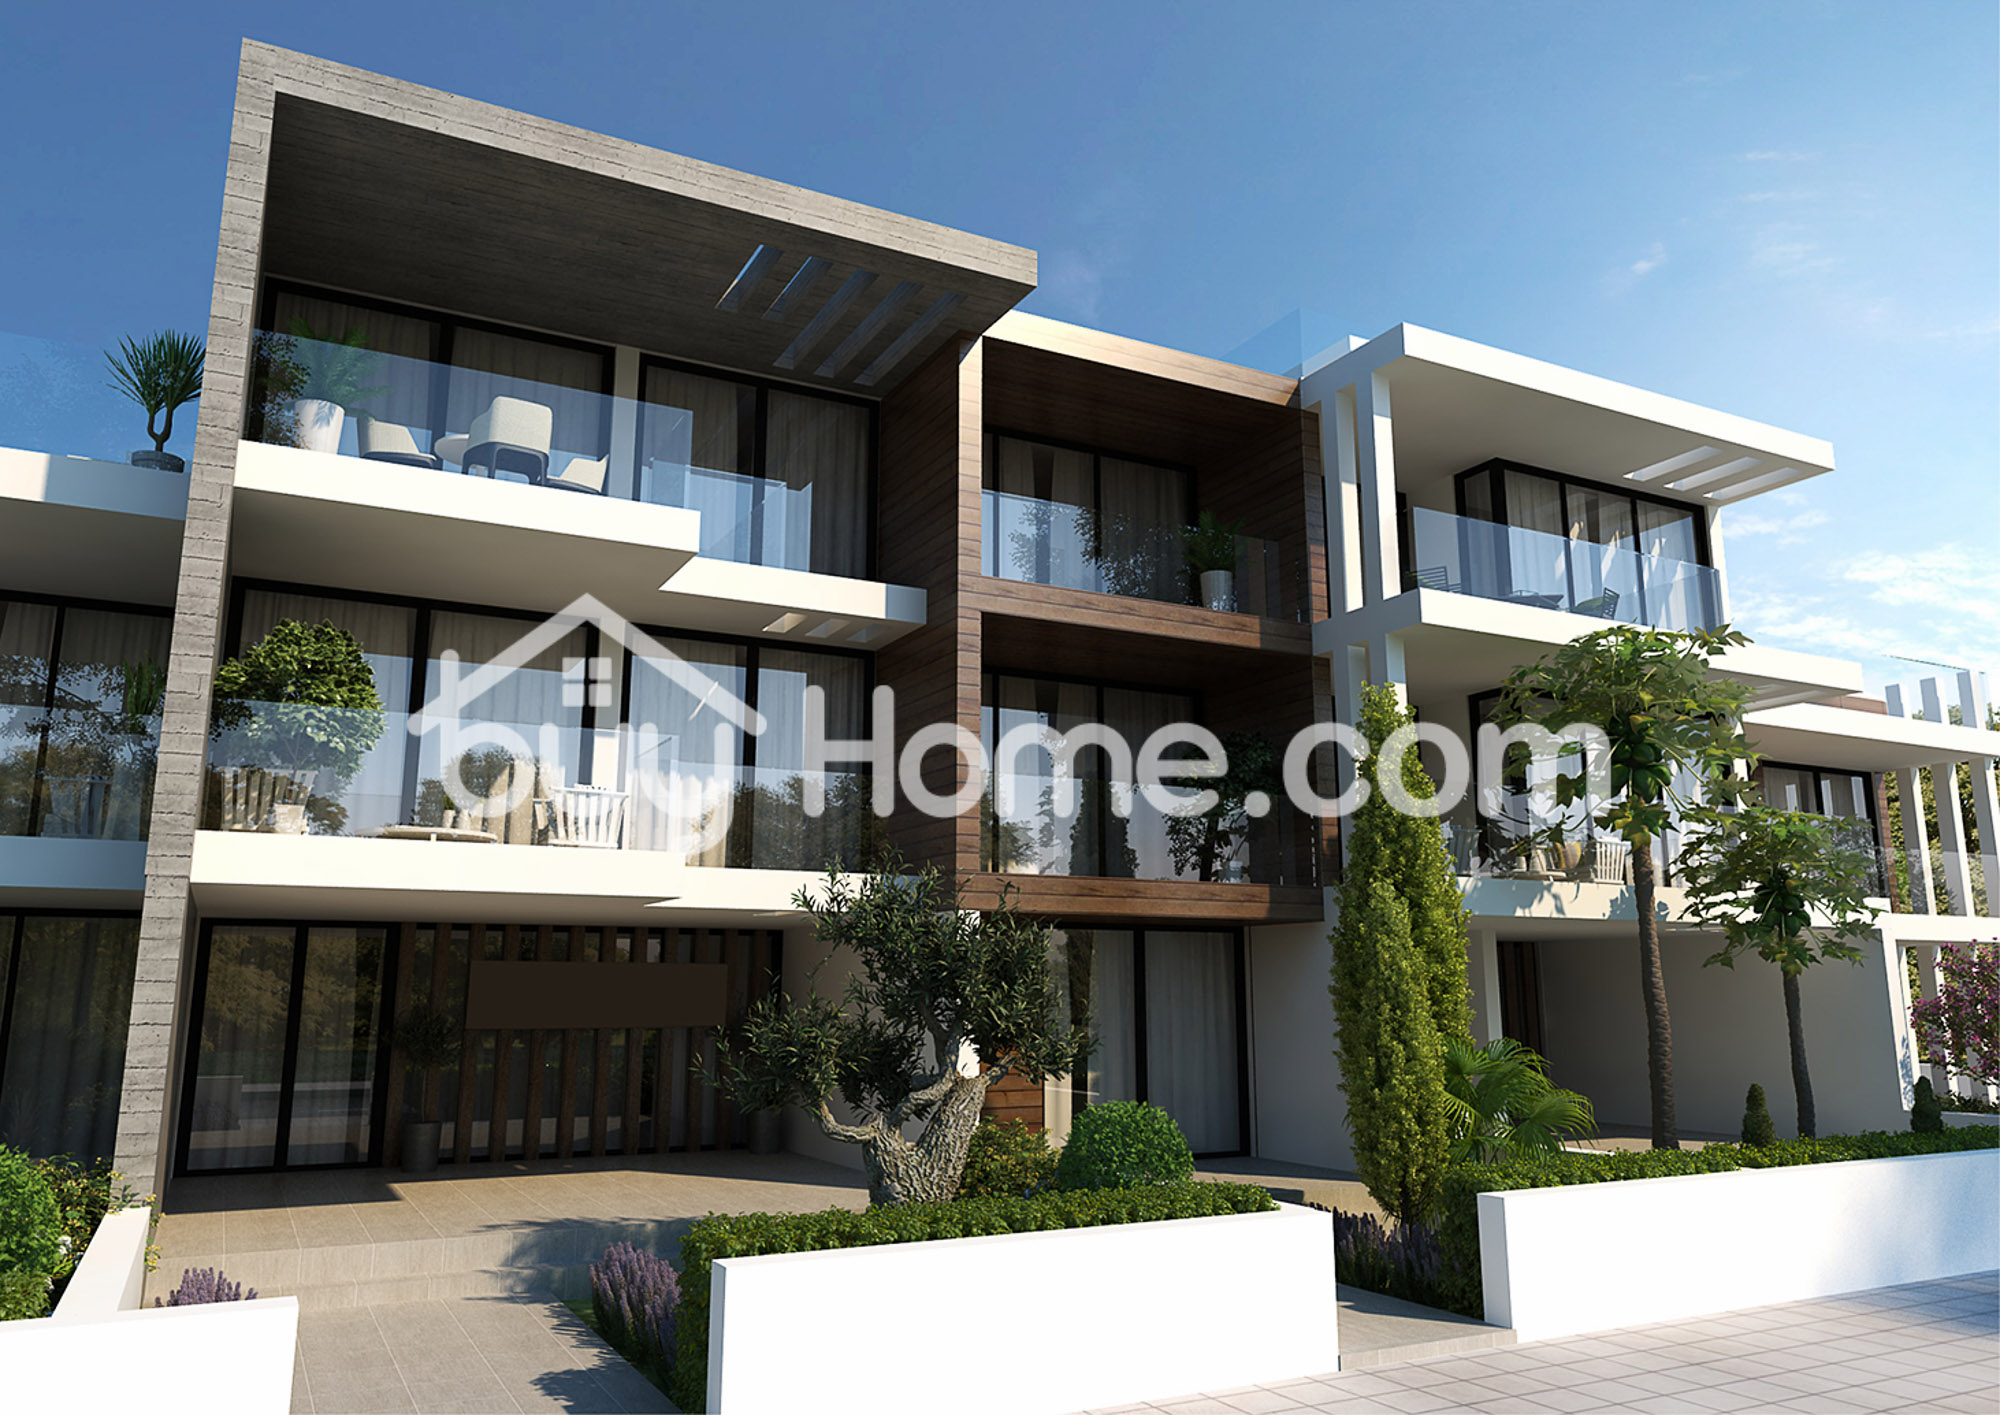 2 BDR Ground floor apartment | BuyHome